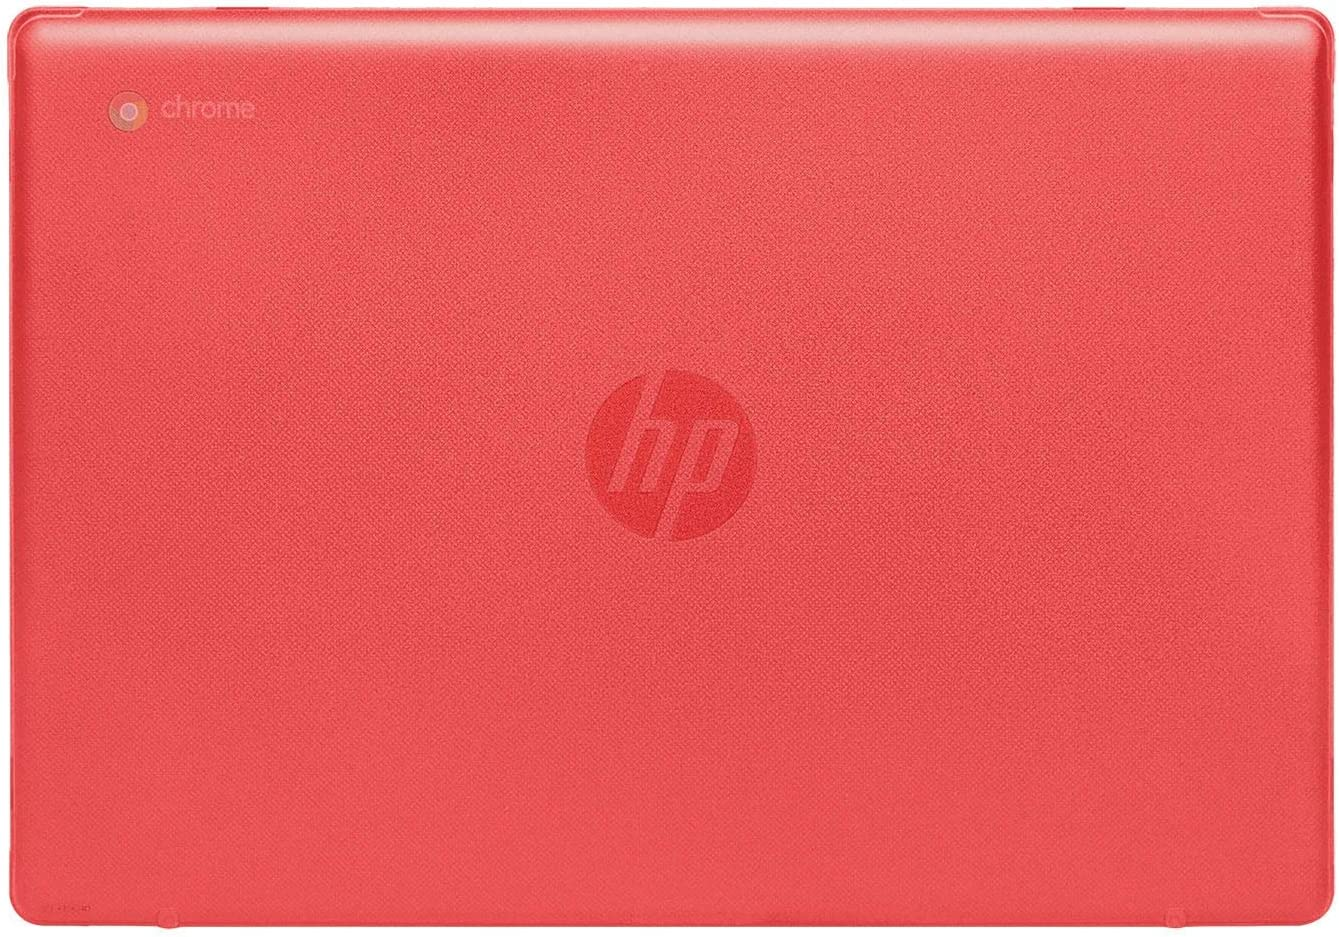 """mCover Hard Shell Case for 2020 14"""" HP Chromebook 14 G6 (NOT Compatible with Older HP C14 G1 / G2 / G3 / G4/ G5 Series) laptops (Red)"""